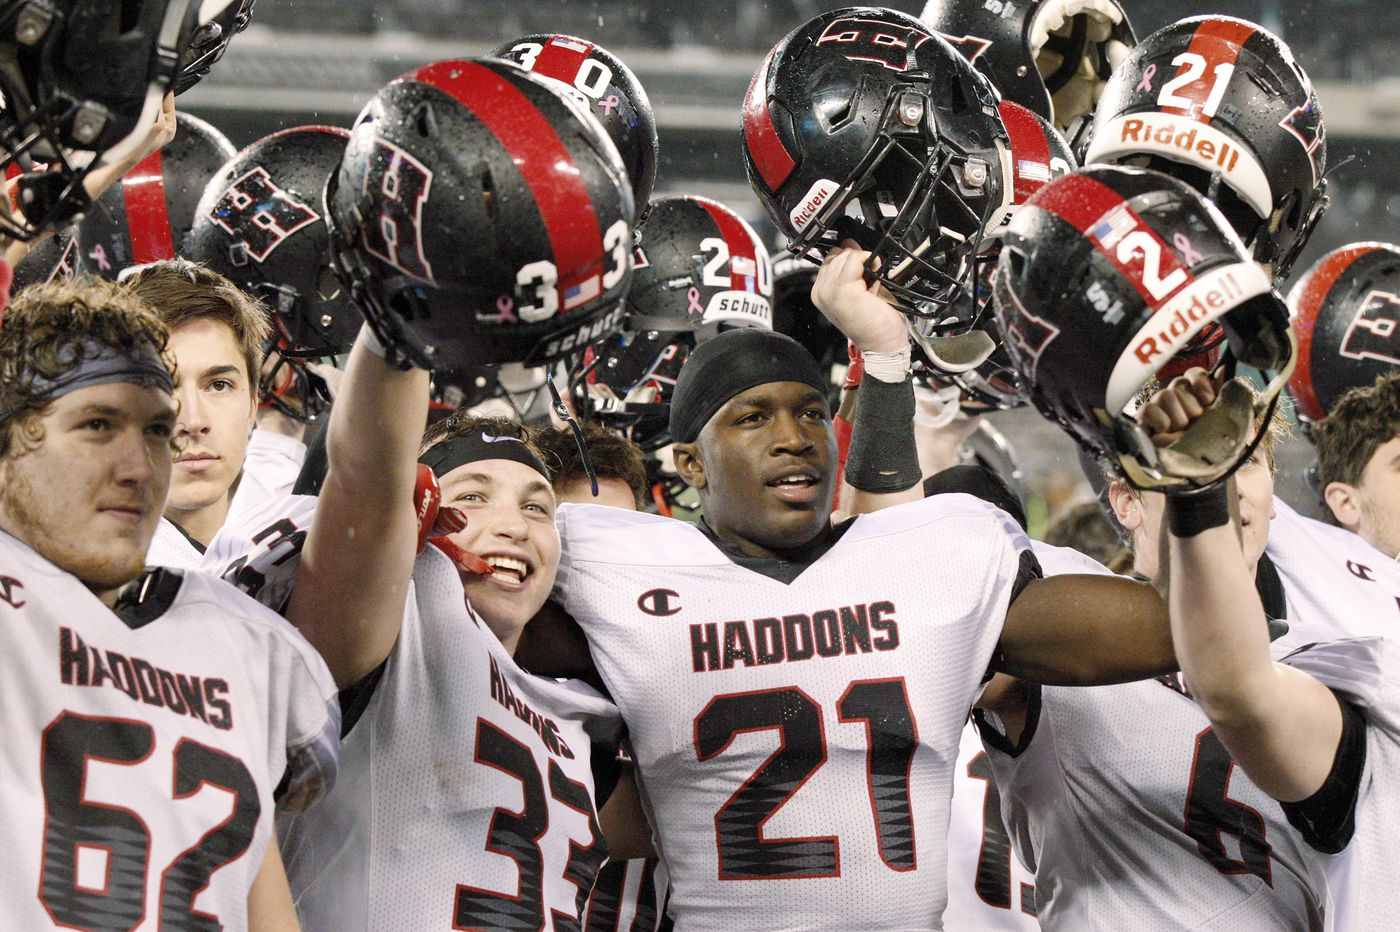 Haddonfield football finishes No. 1 in final rankings